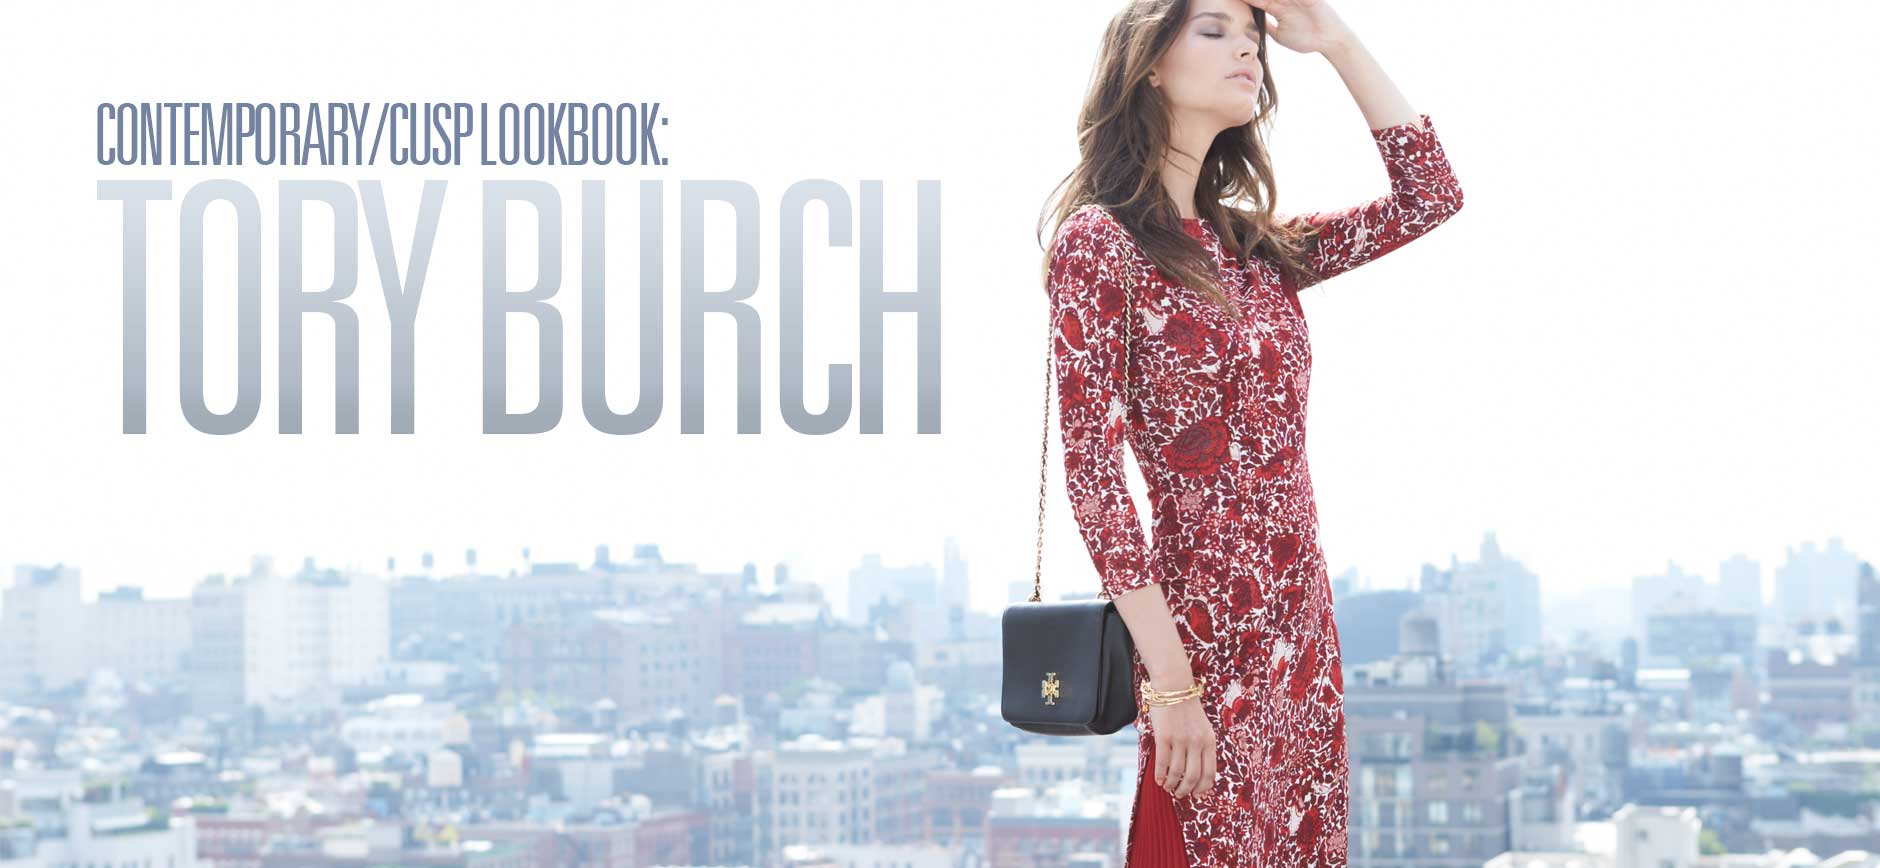 World of Tory Burch